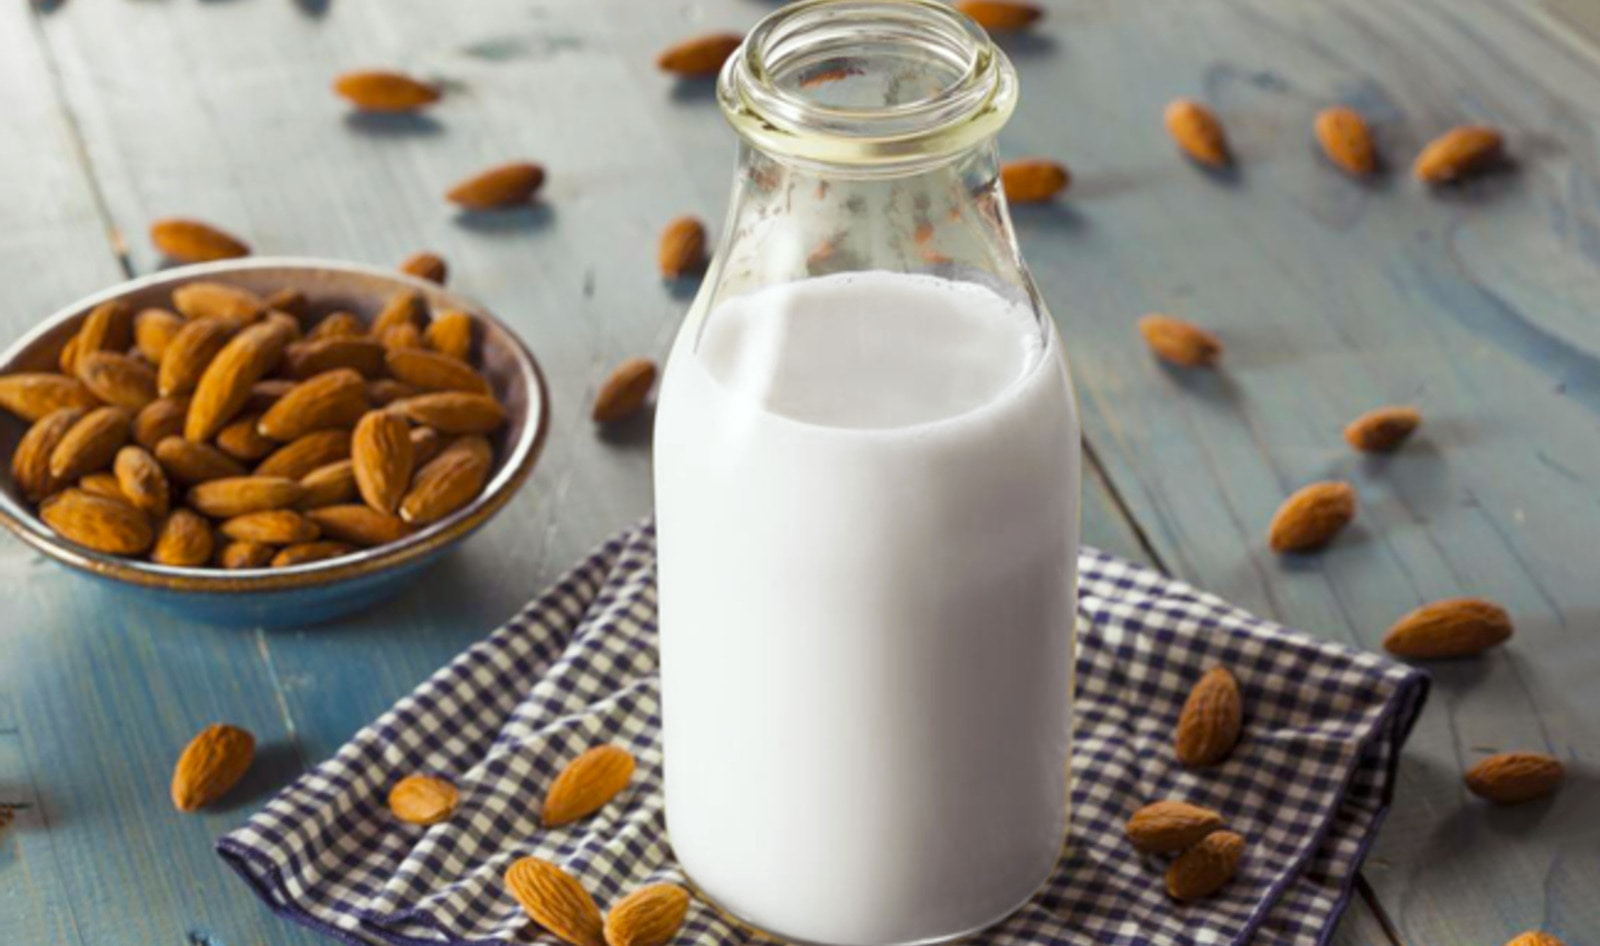 75 Percent of Consumers Are Not Confused by Vegan Milk Labels